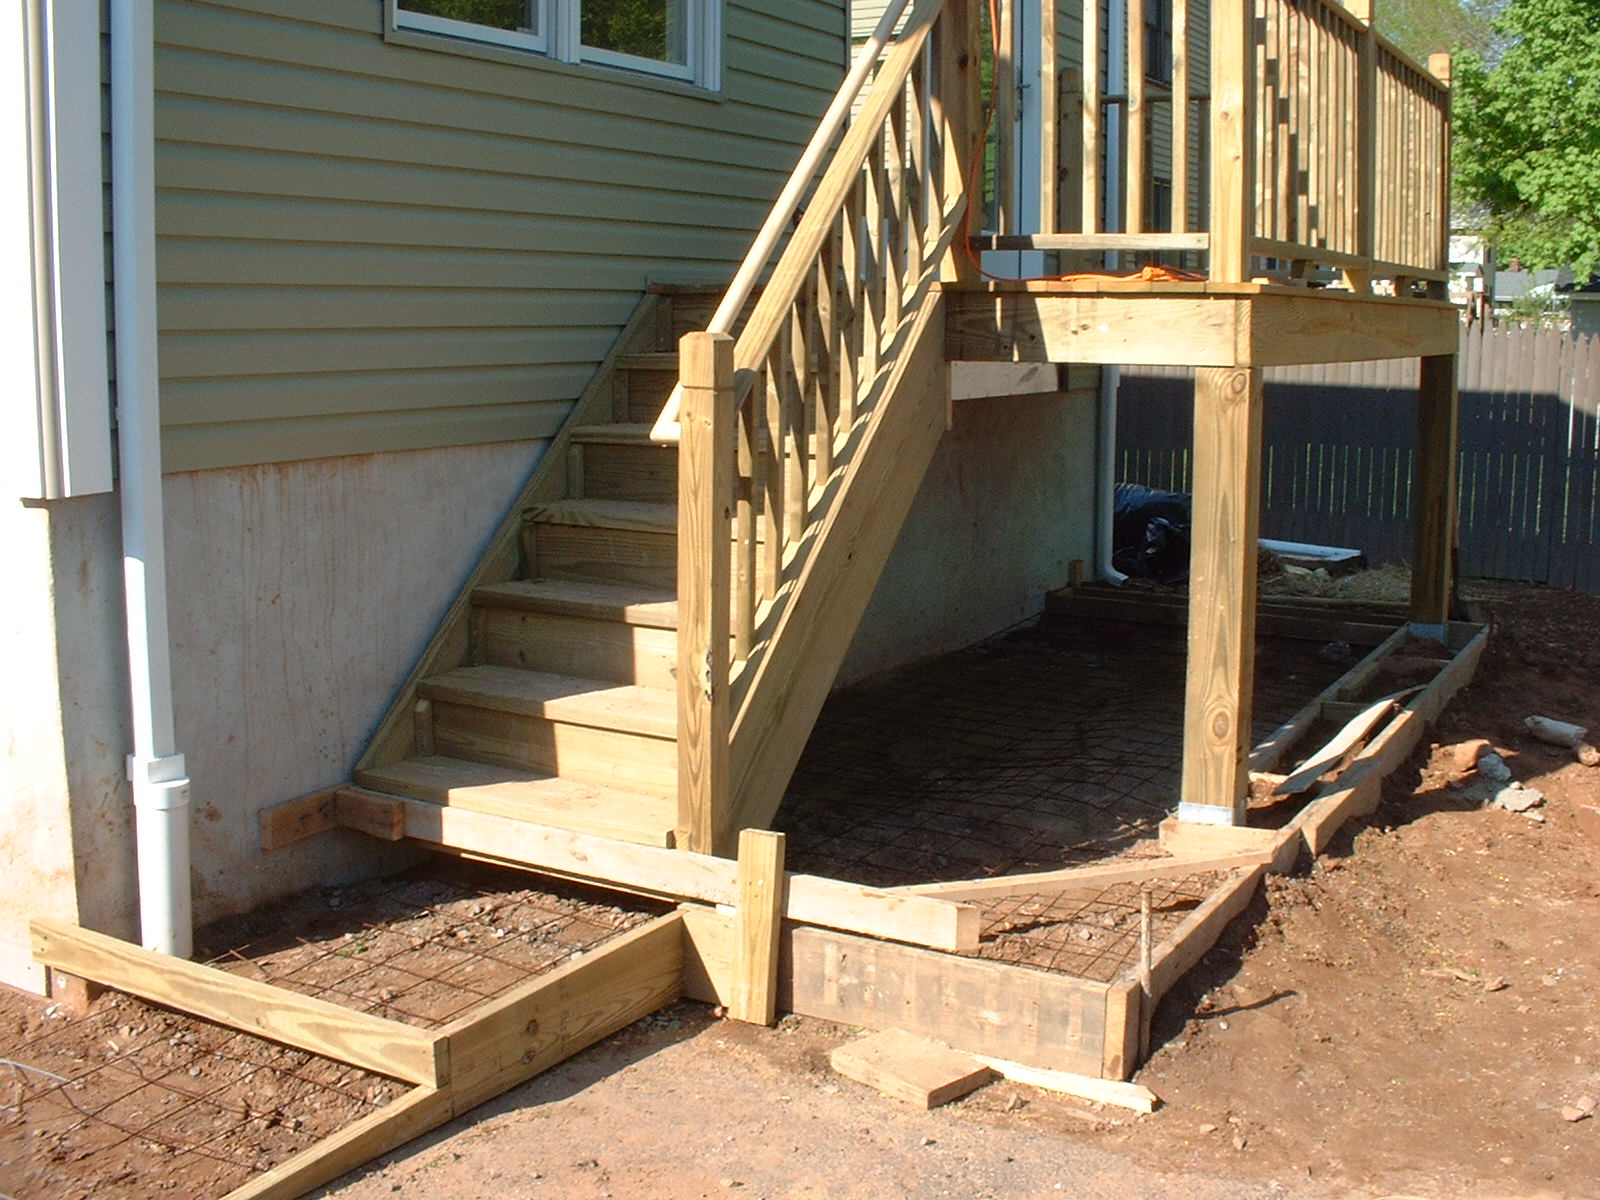 A slab will be poured below the deck to store garbage cans.